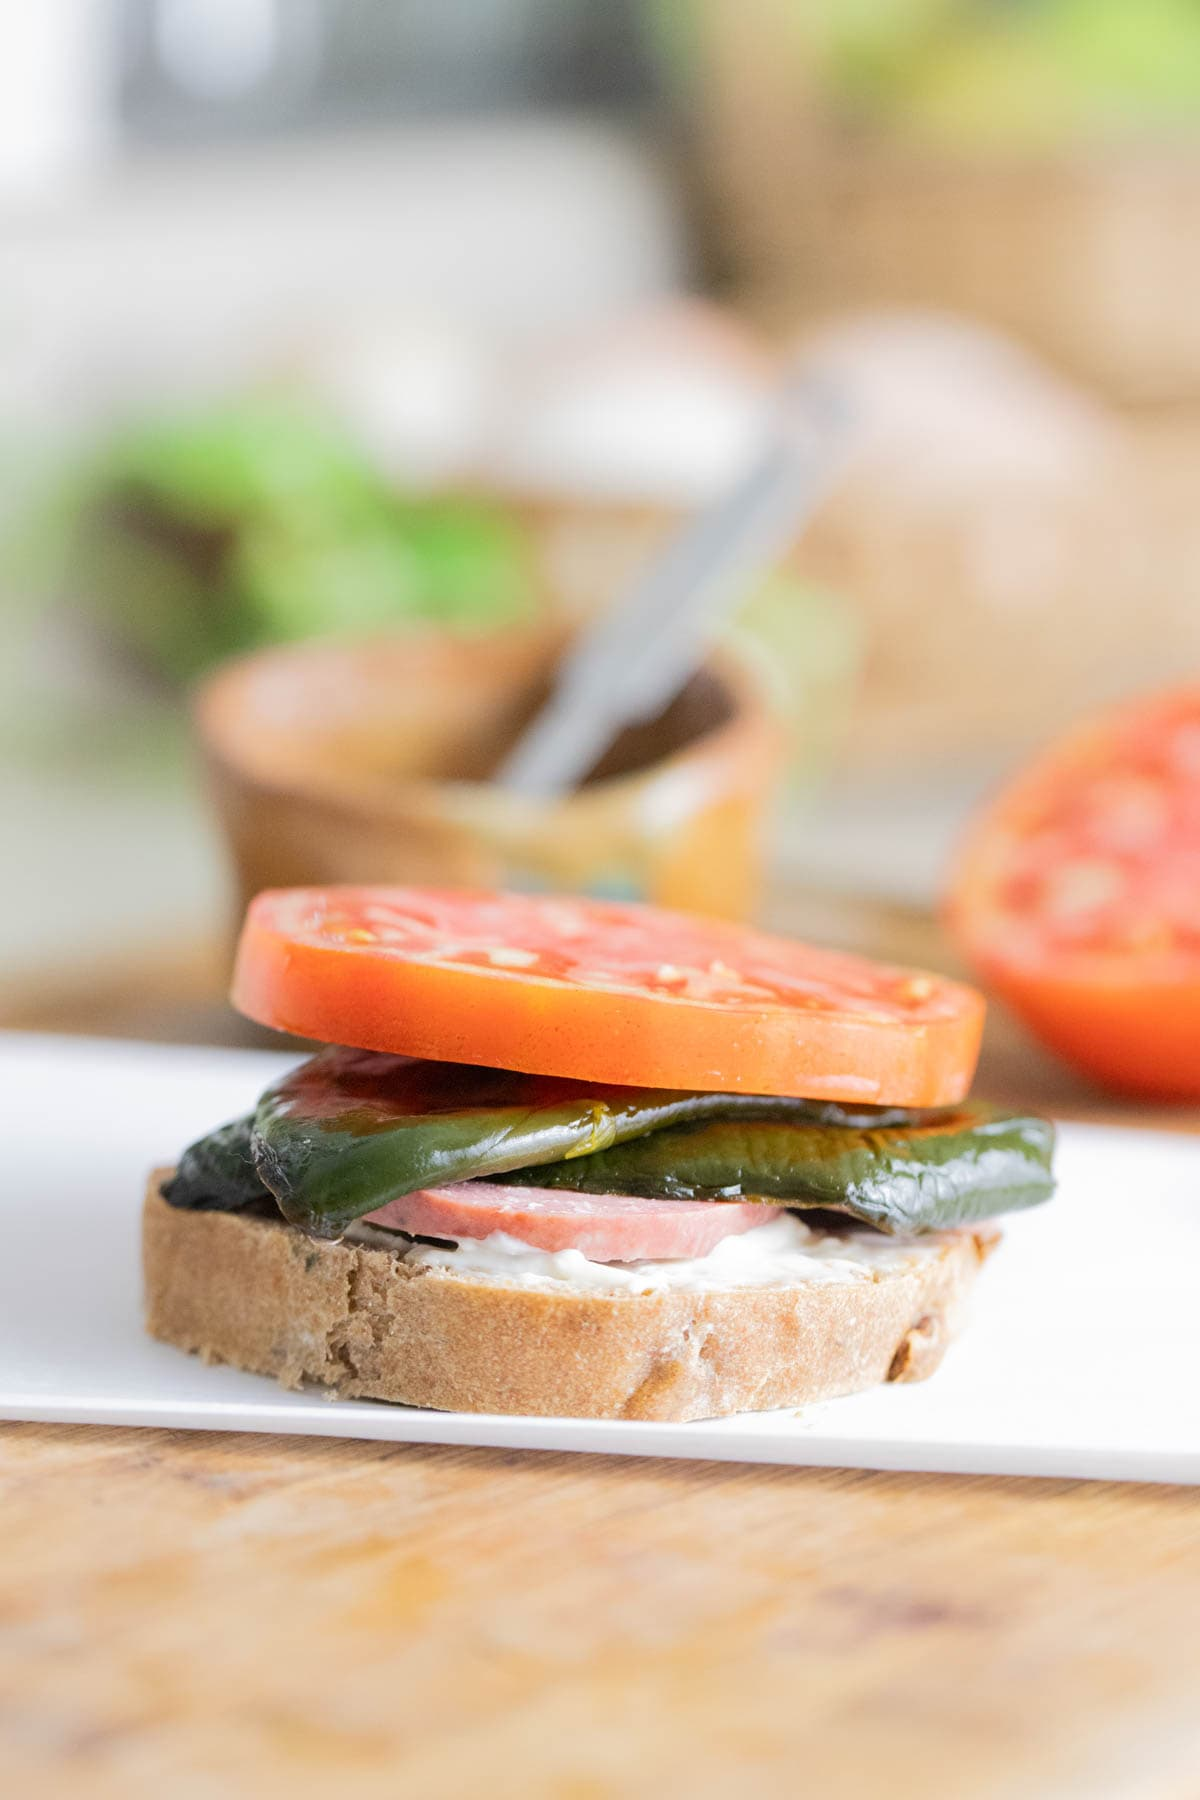 Serving poblano peppers in a sandwich.